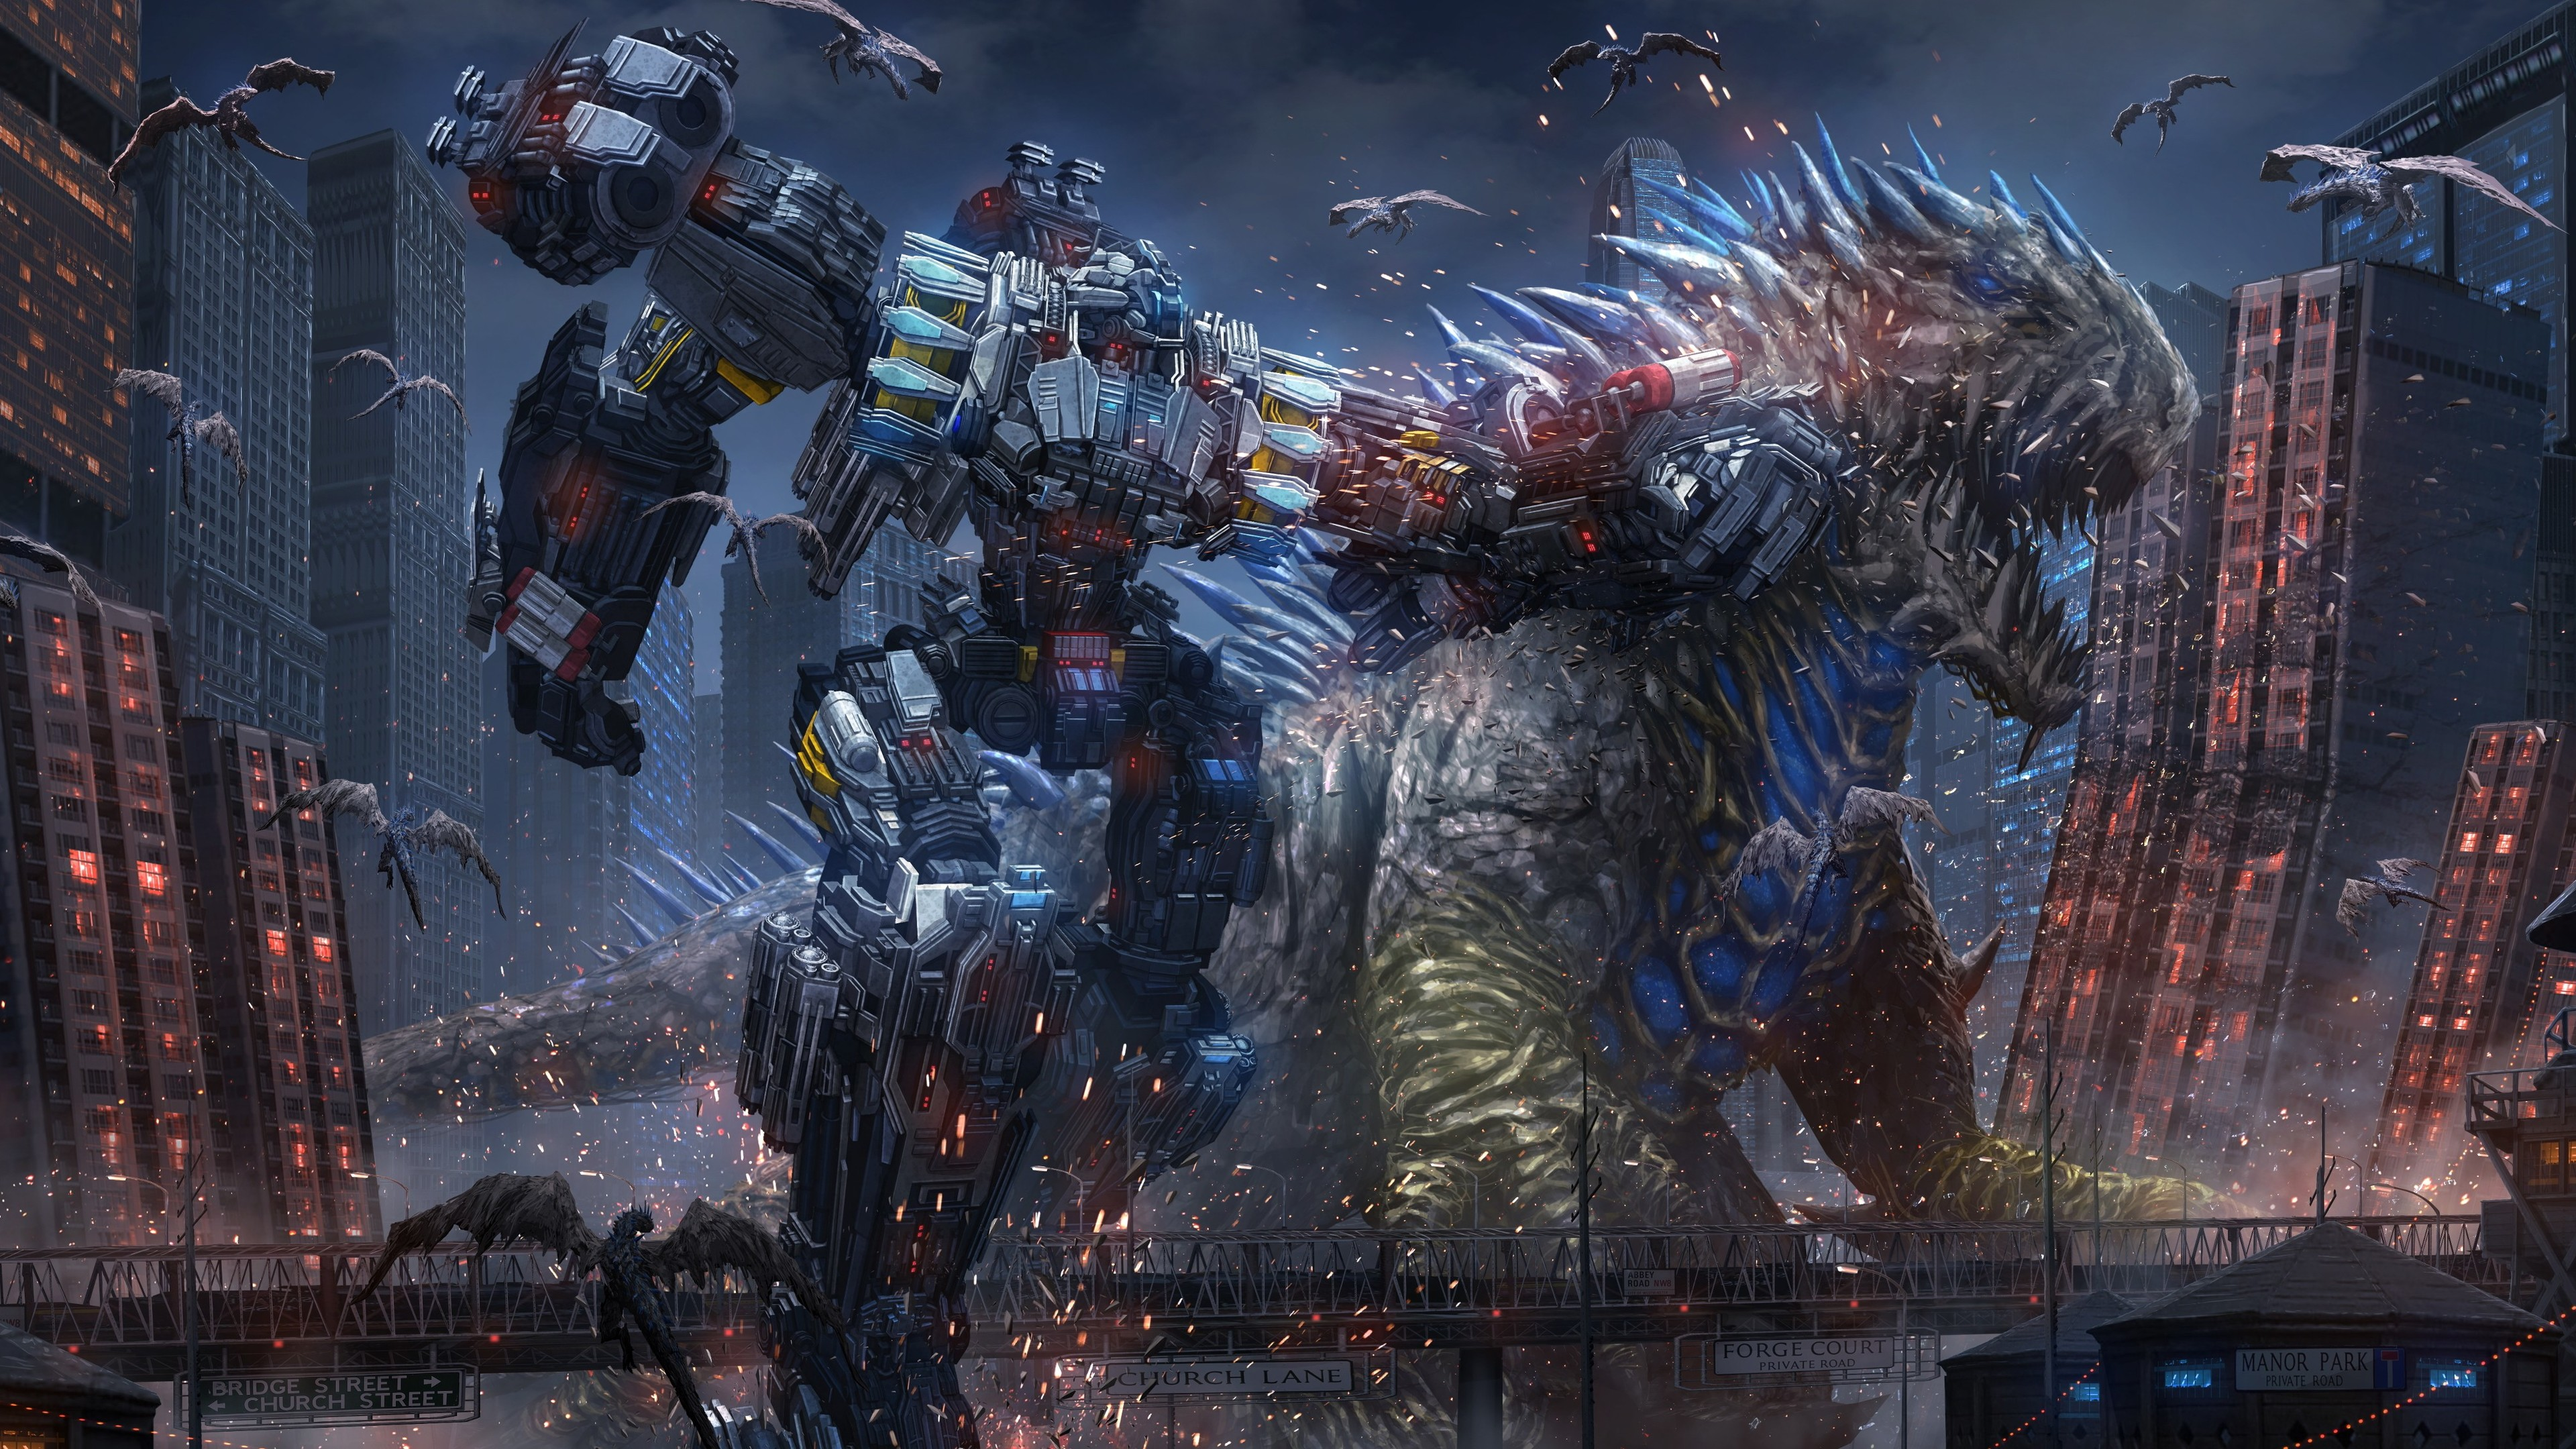 ready player one robots future 5k 1540754655 - Ready Player One Robots Future 5k - scifi wallpapers, robot wallpapers, hd-wallpapers, digital art wallpapers, artwork wallpapers, artist wallpapers, 5k wallpapers, 4k-wallpapers